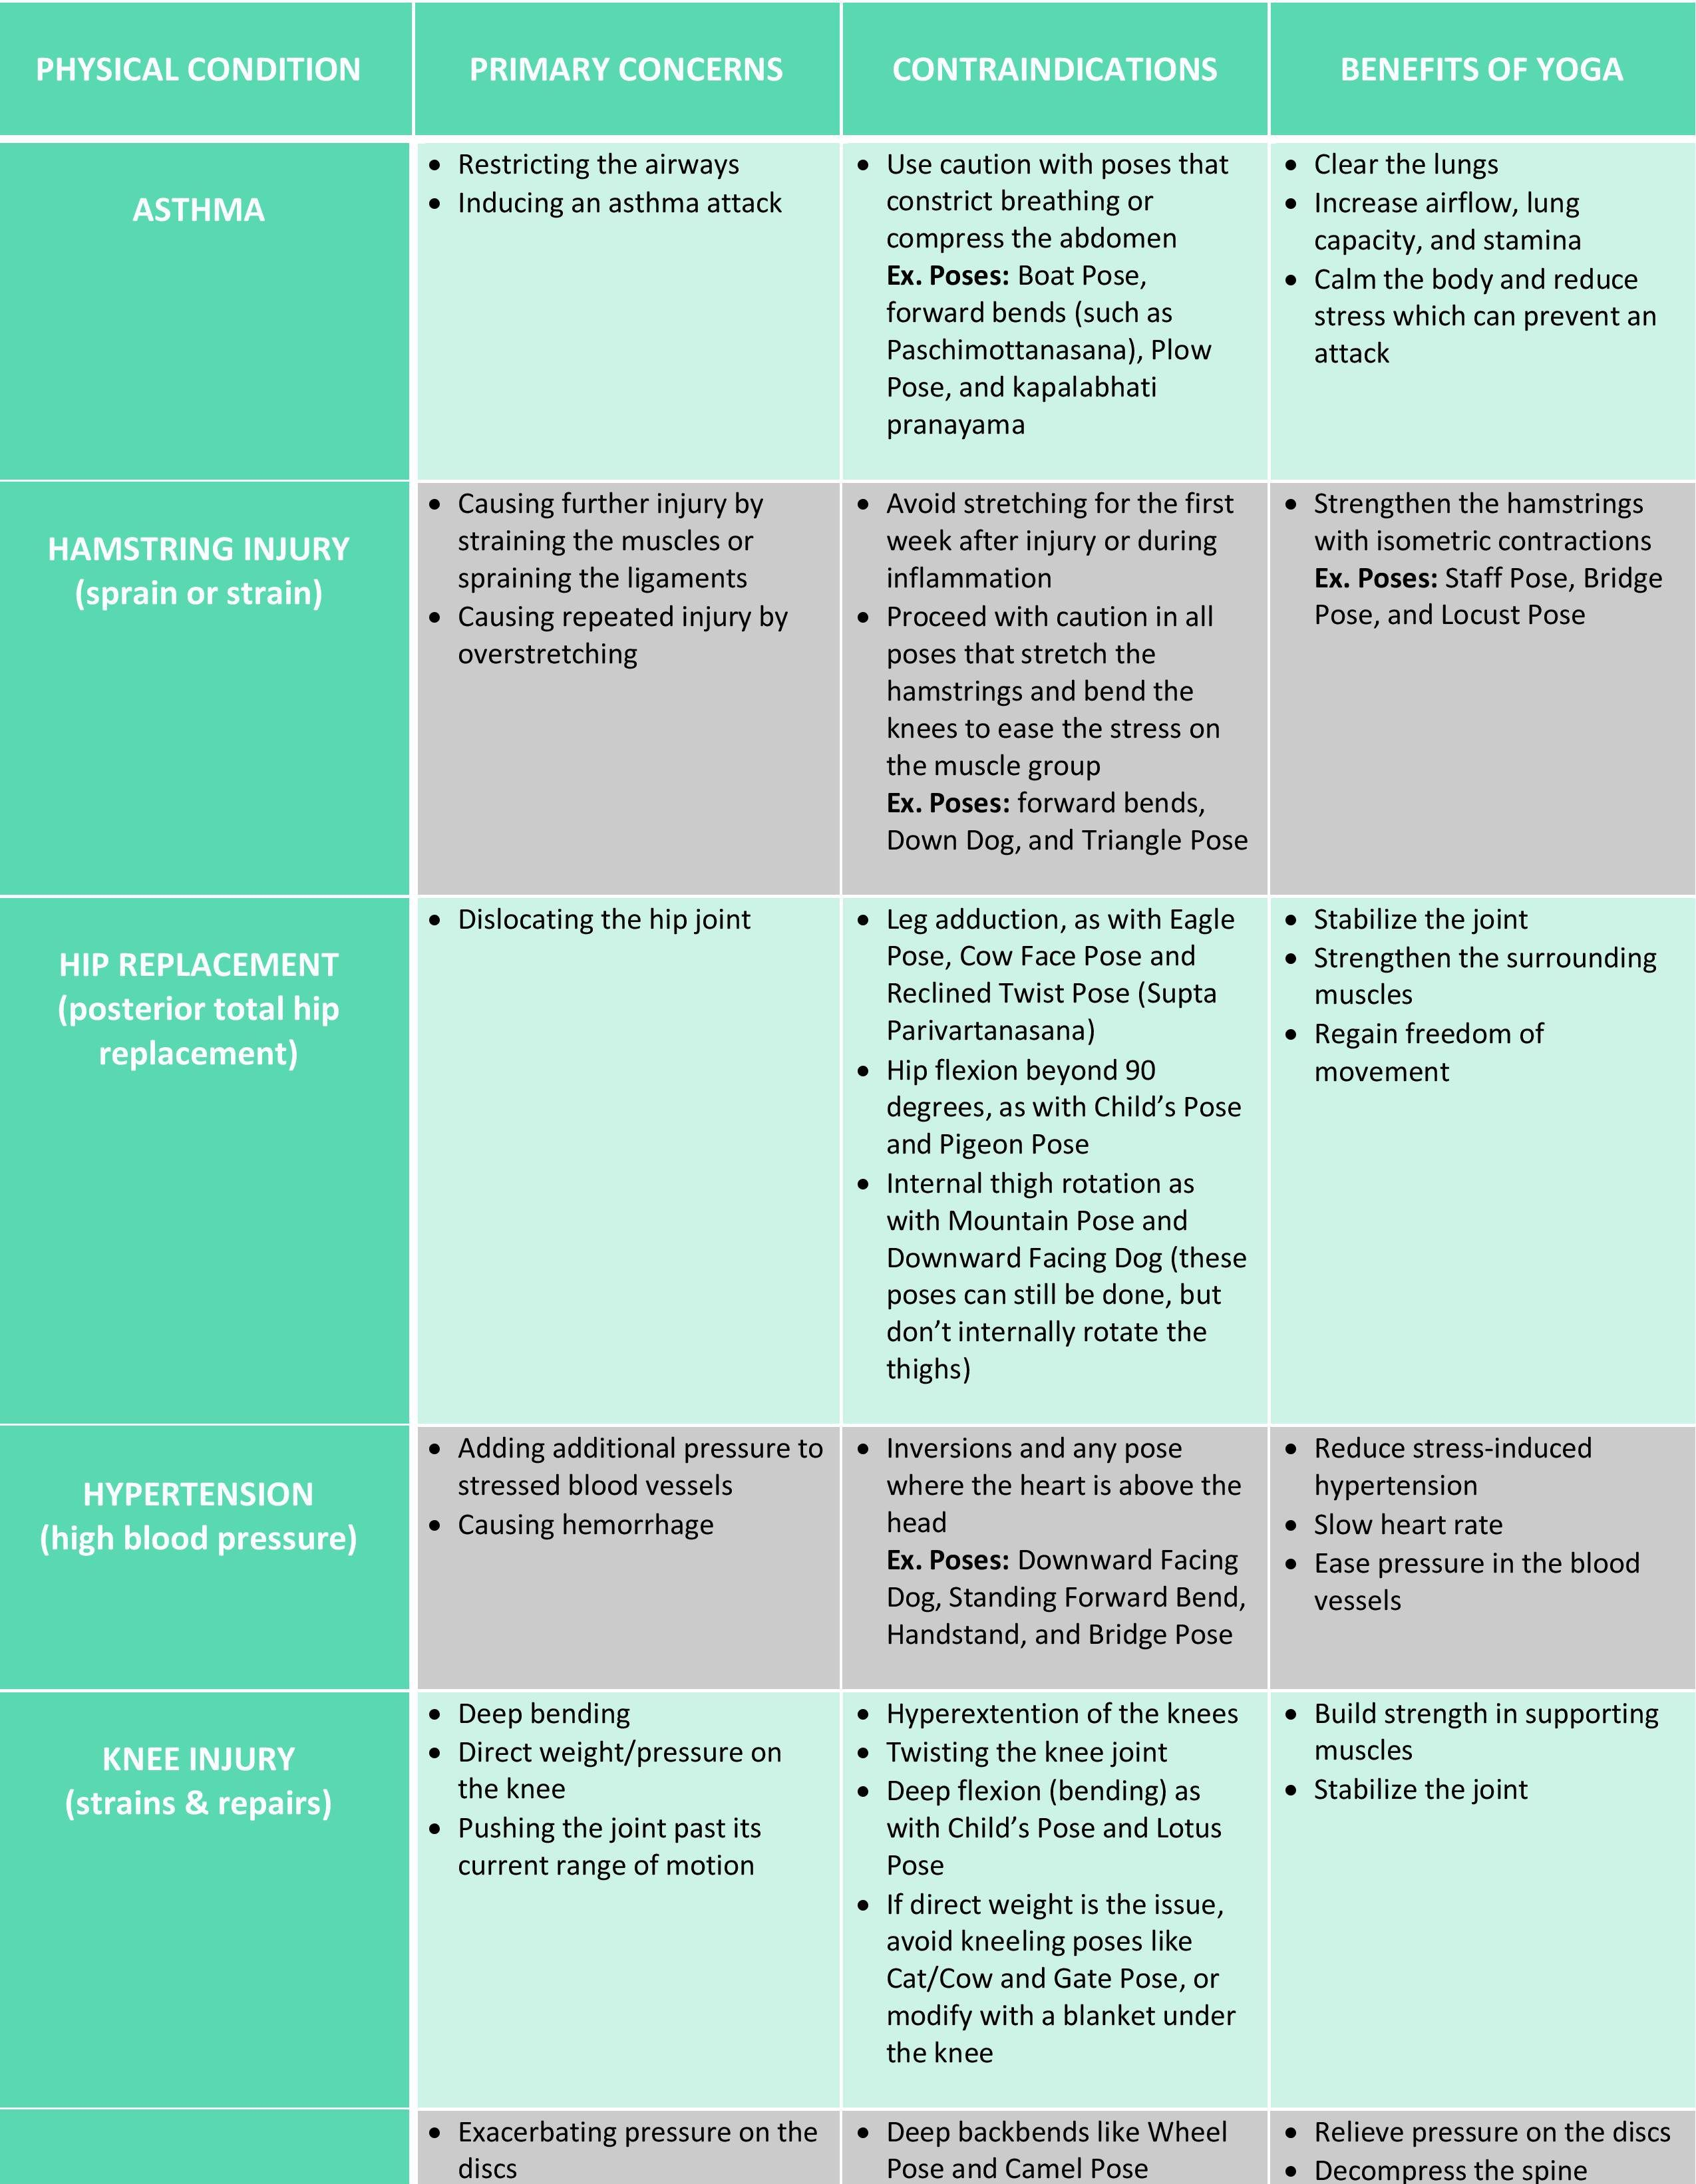 yoga contraindications cheat sheet 11 most common conditions all